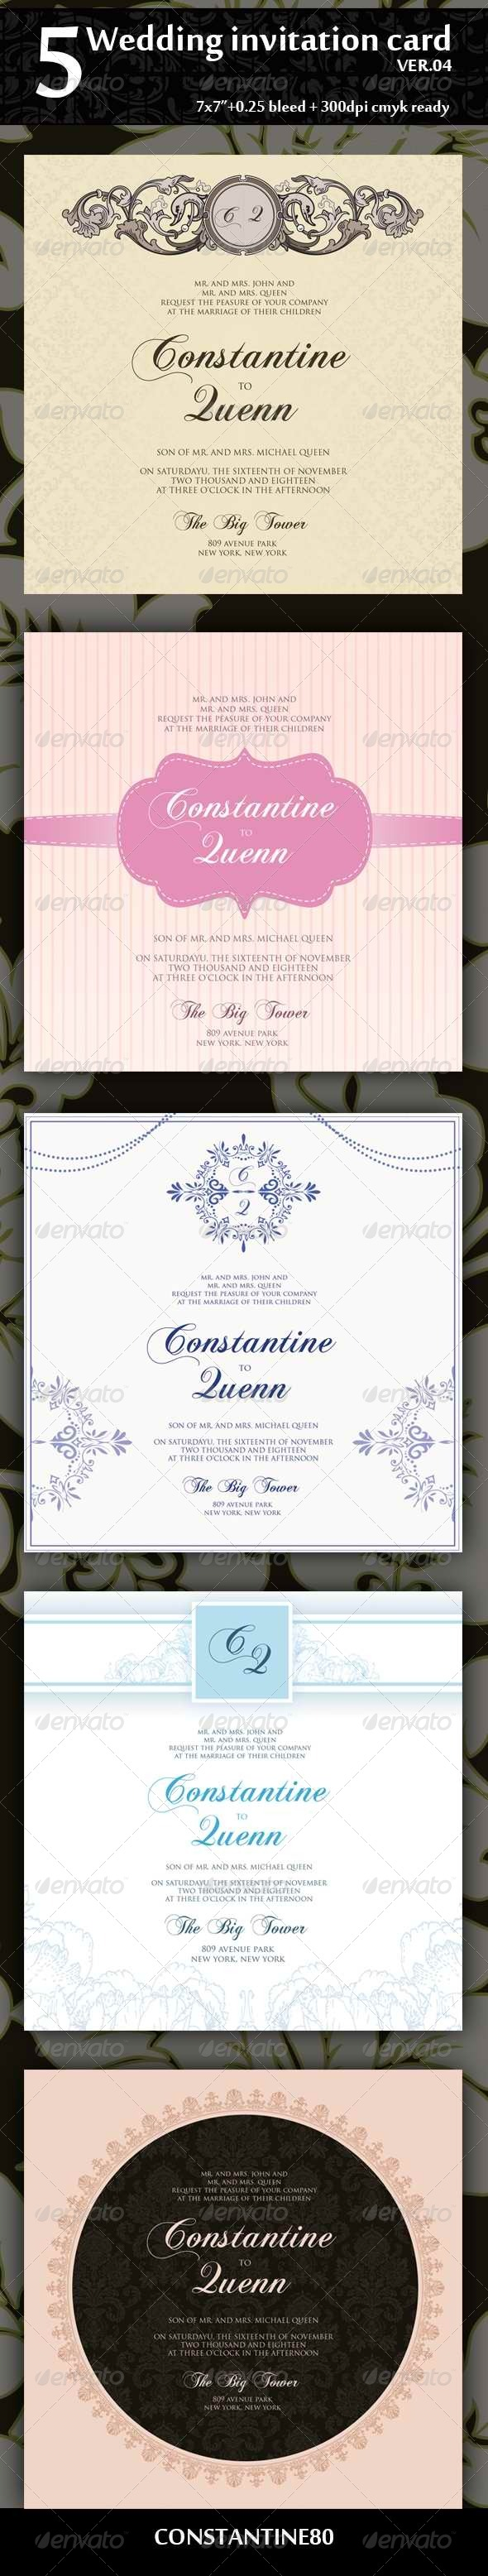 5 Wedding Invitation 7x7 Ver.04 - Weddings Cards & Invites